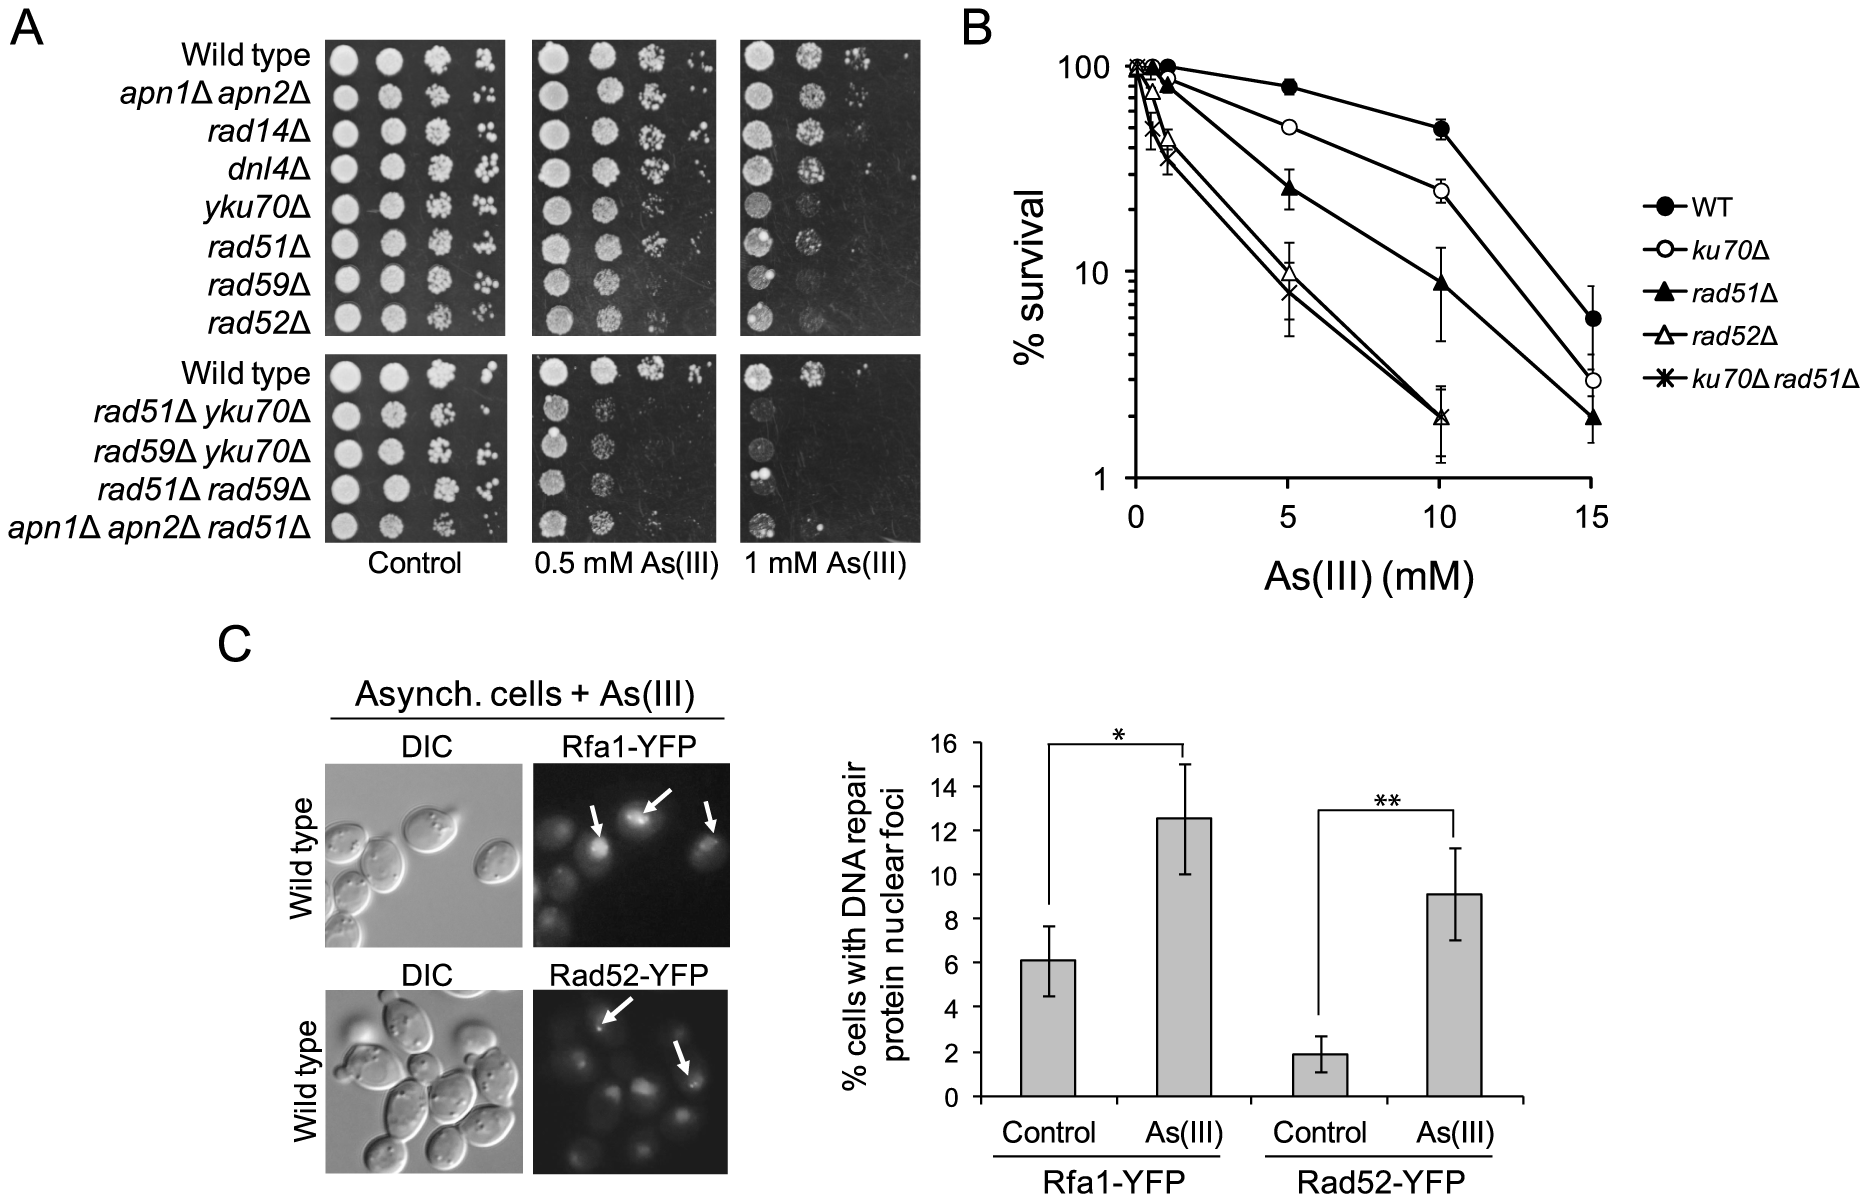 The role of DNA repair pathways in tolerance to As(III) in budding yeast.